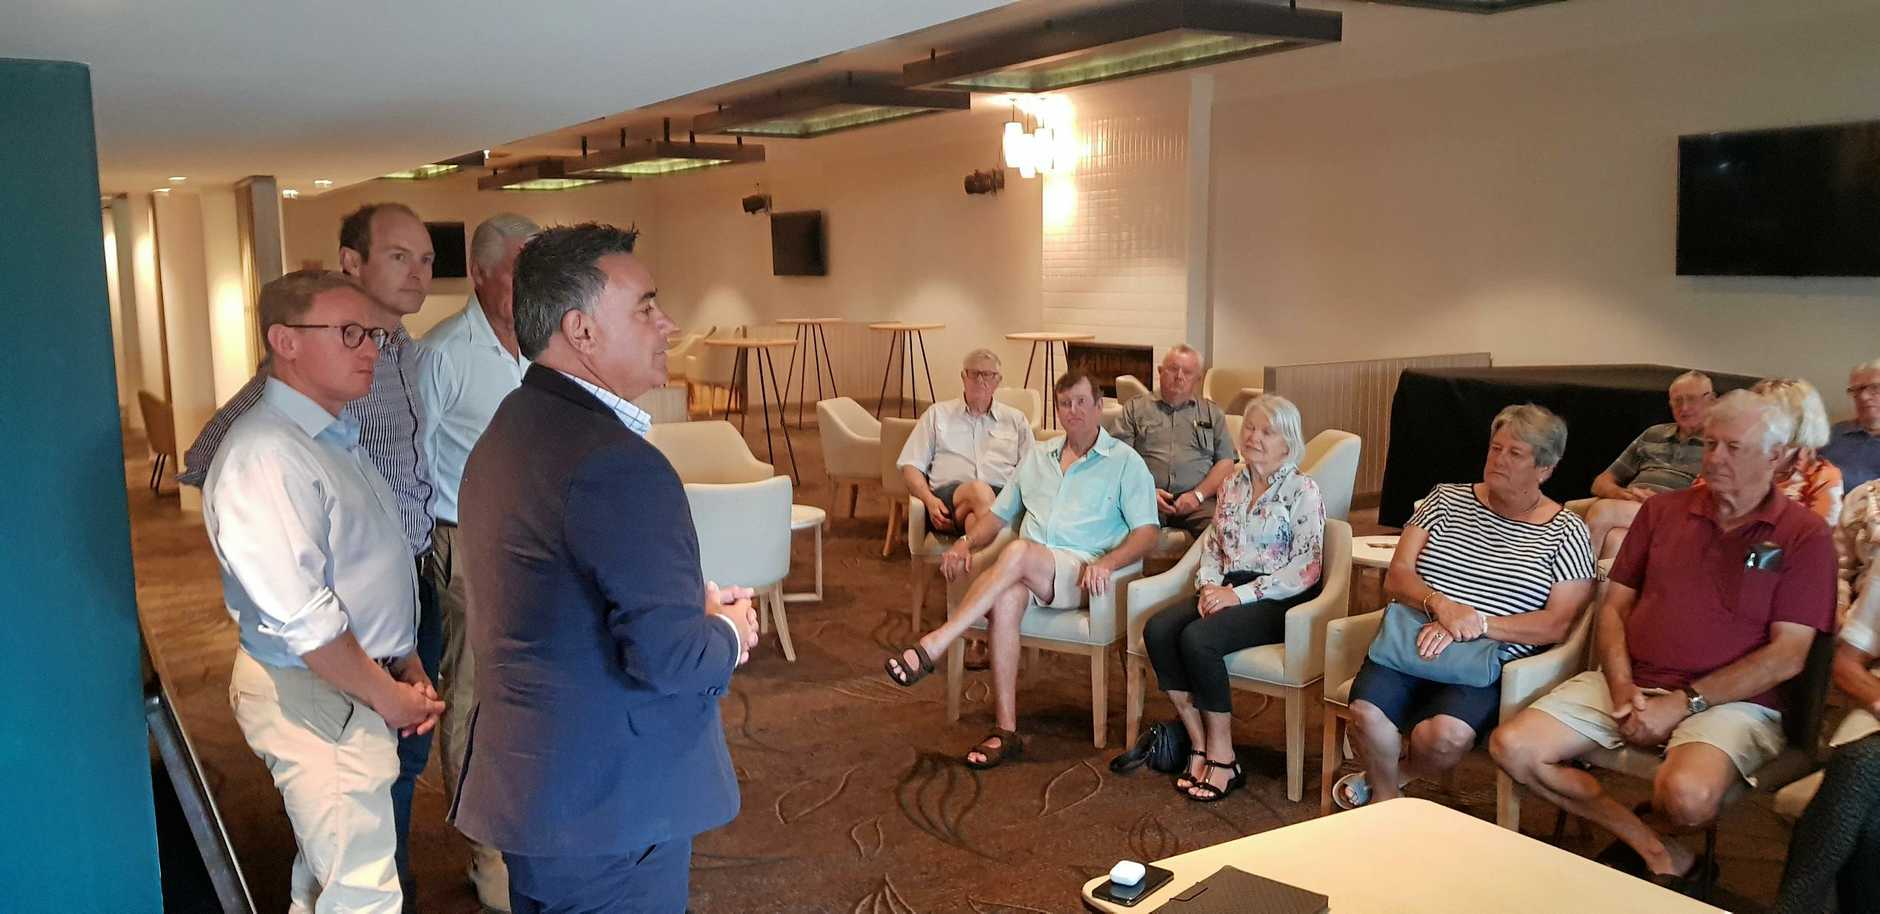 TRAVEL CARD: Deputy Premier John Barilaro (right) announcing the promise of a Regional Seniors Travel Card at the Ballina RSL Club on Friday with (from left) Nationals'  Ben Franklin, Austin Curtin and Geoff Provest.